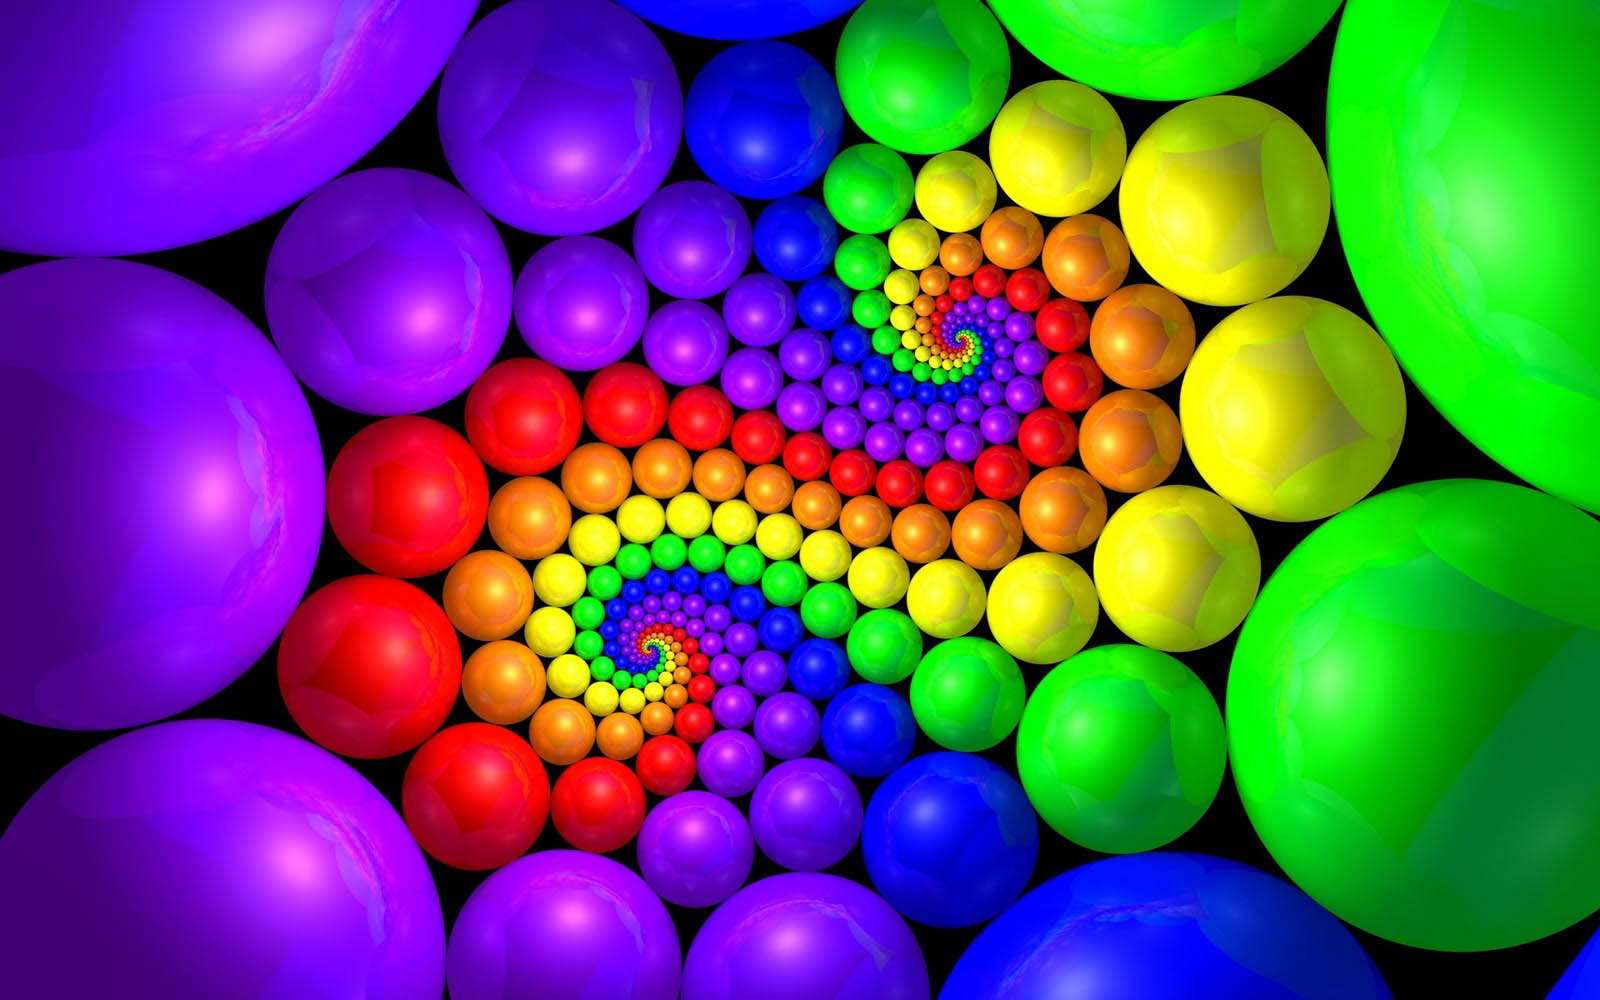 3D Wallpapers HD | Amazing Wallpapers